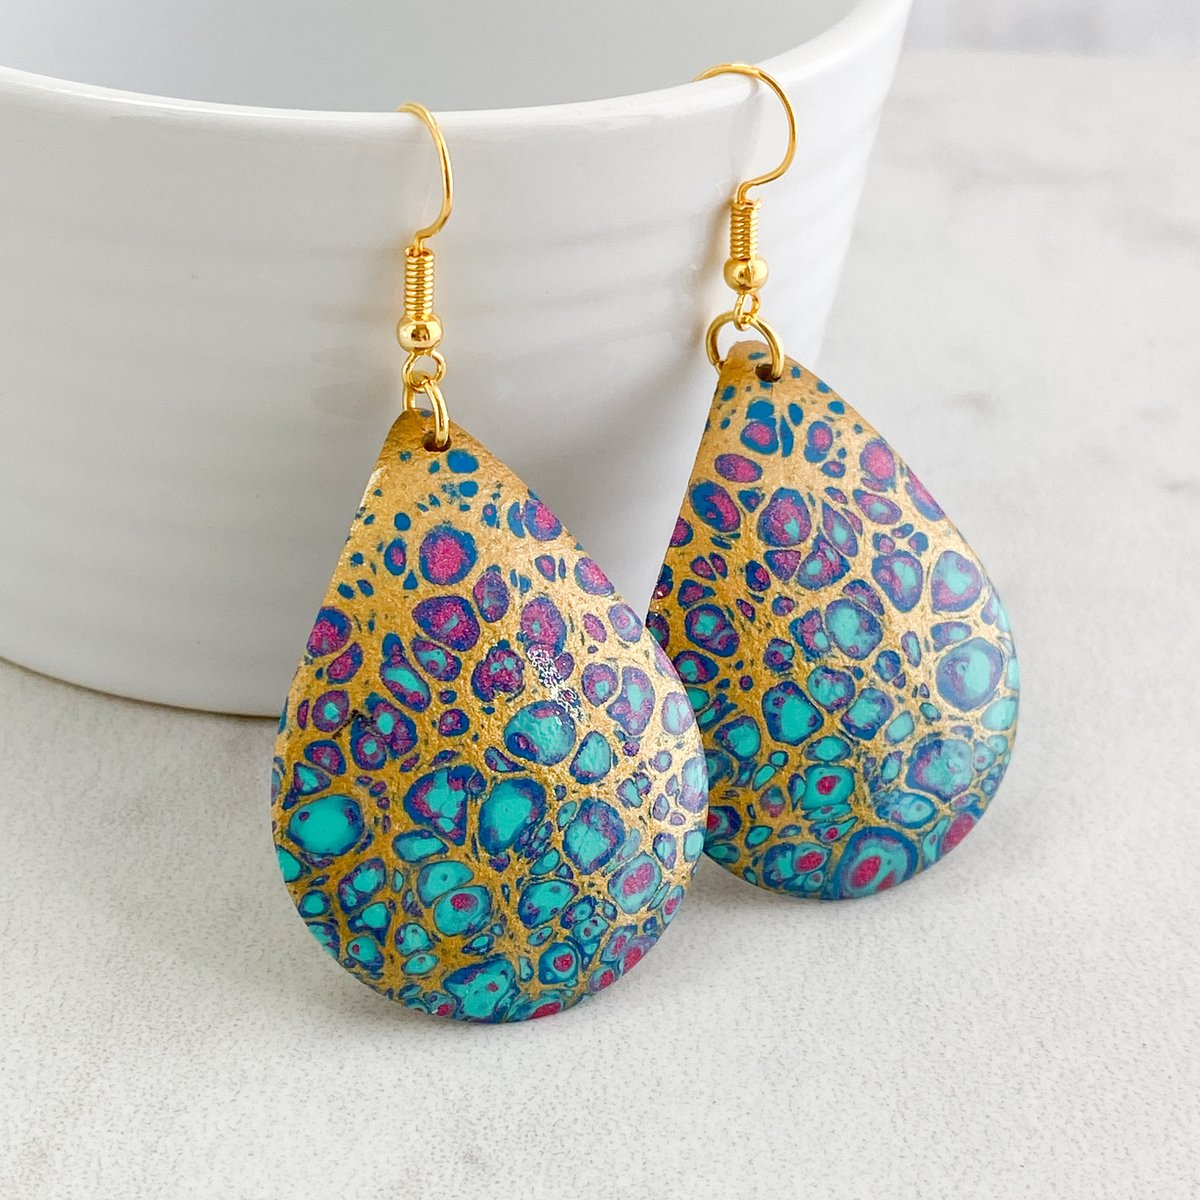 Big Colorful Earrings, Summer Earrings, Multicolor Earrings, Gift for Her, Handmade Jewelry, Handpainted, Gold, Hot Pink, Aqua, Style 119 https://t.co/zddU2IFoIW #shopping #smallbiz #ecommerce #style #shopsmall #etsyshop #etsy #gifts https://t.co/PMdTEuEIec